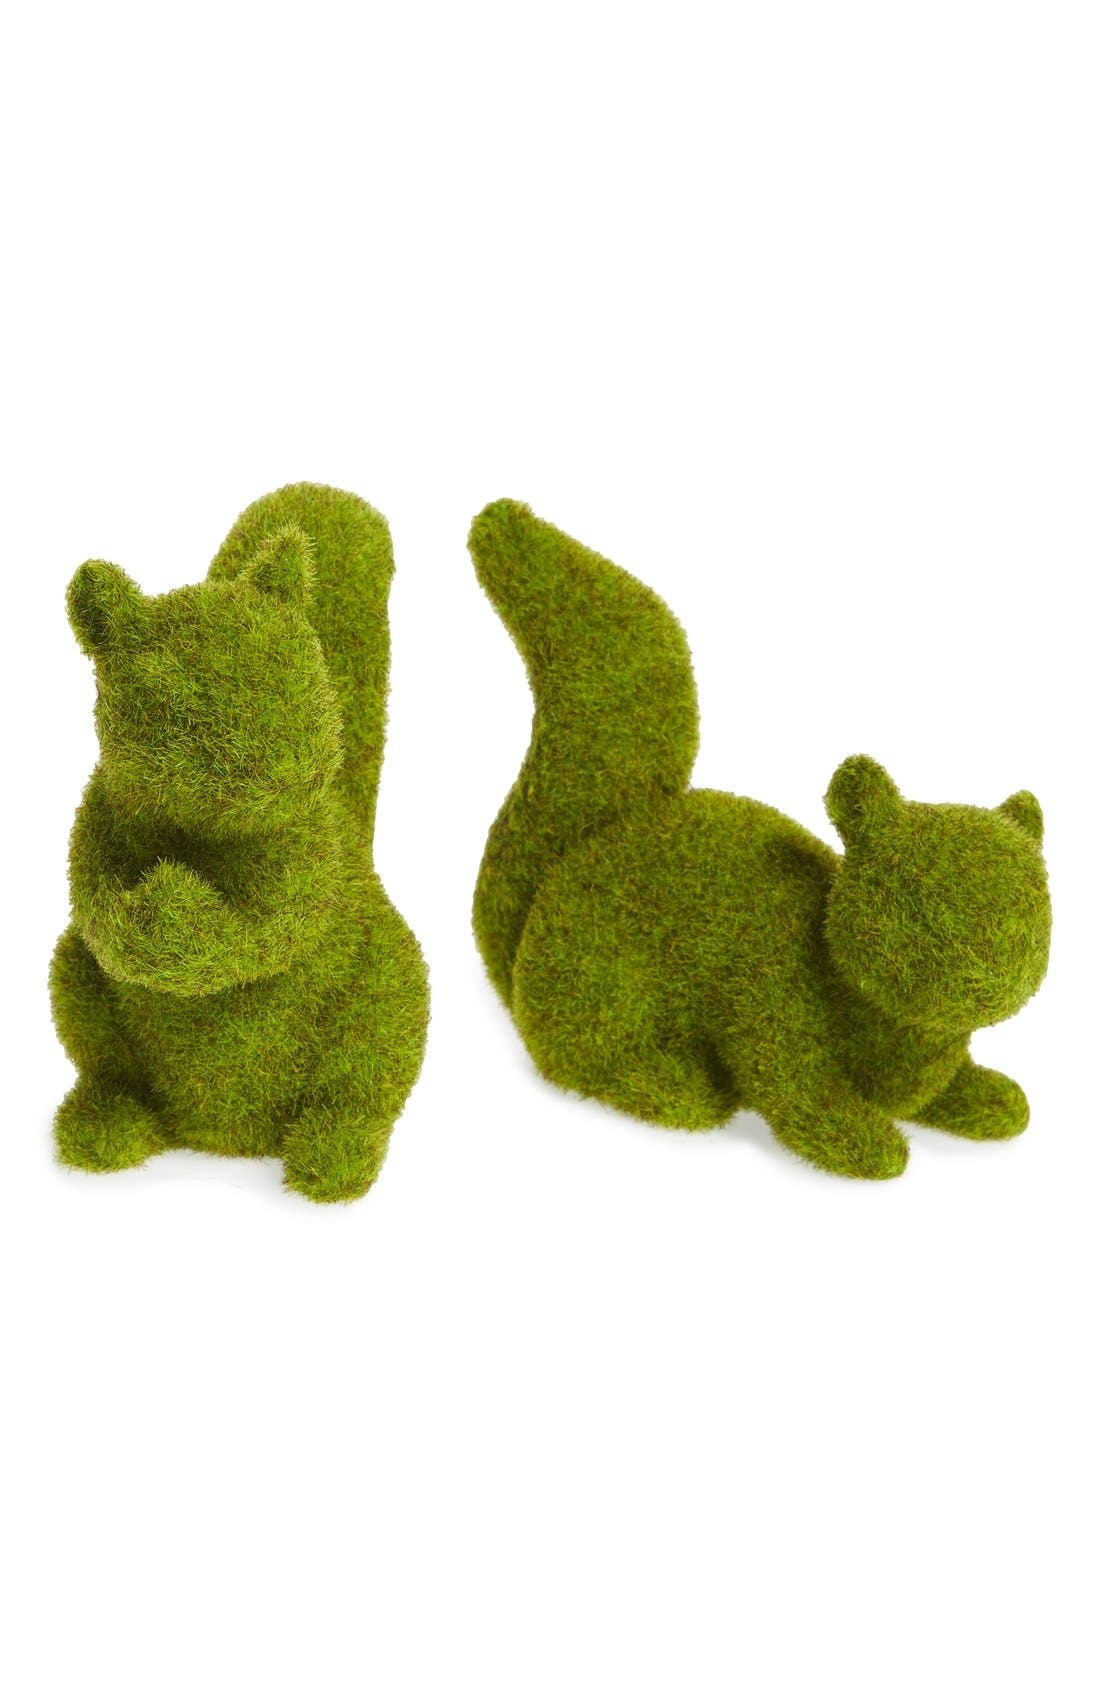 Main Image - ALLSTATE 'Moss Squirrel' Figurines (Set of 2)